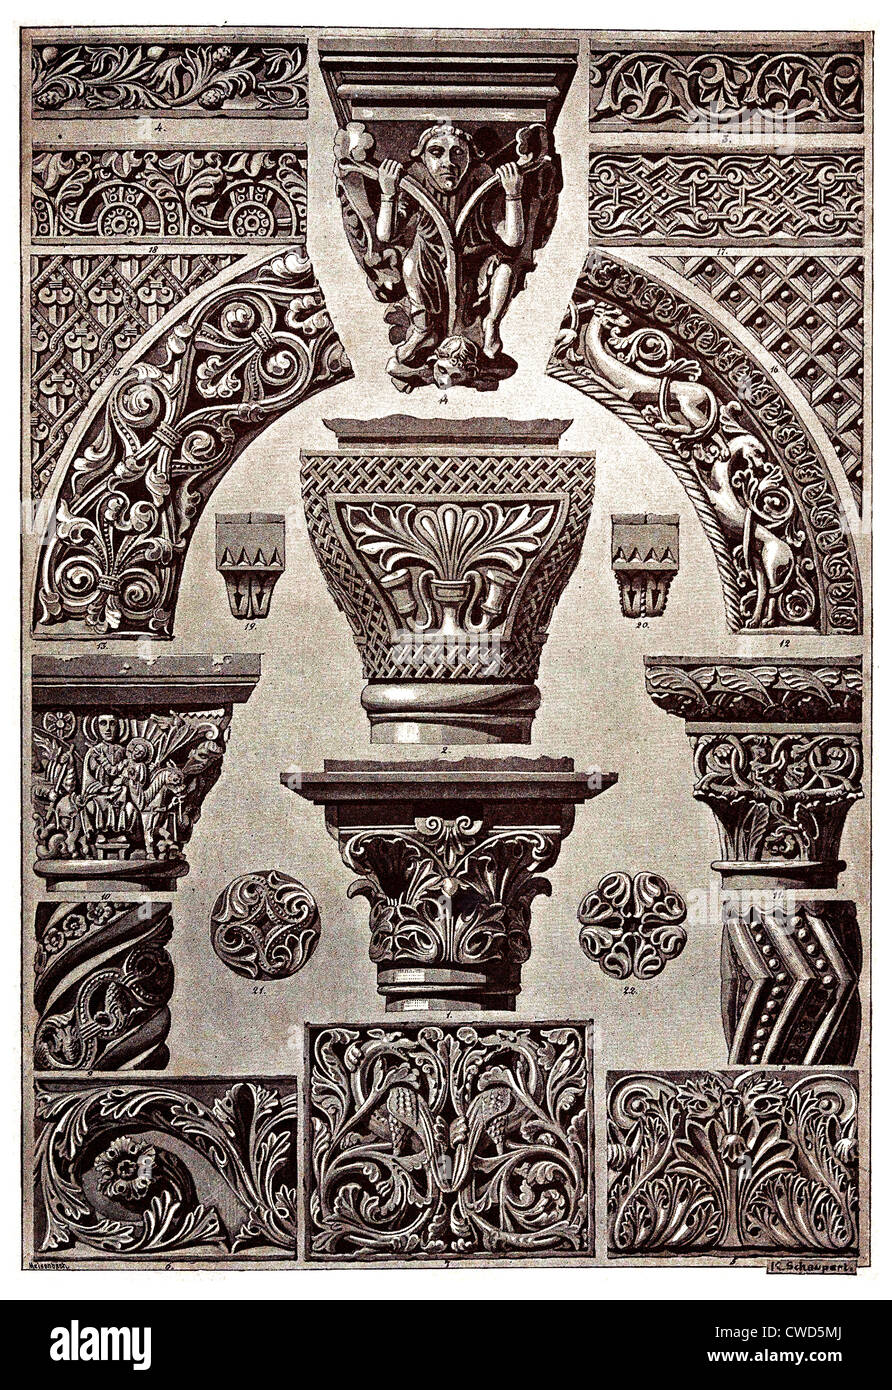 Byzantine and Romanesque Middle Ages architecture and sculpture Plate 34 - Stock Image